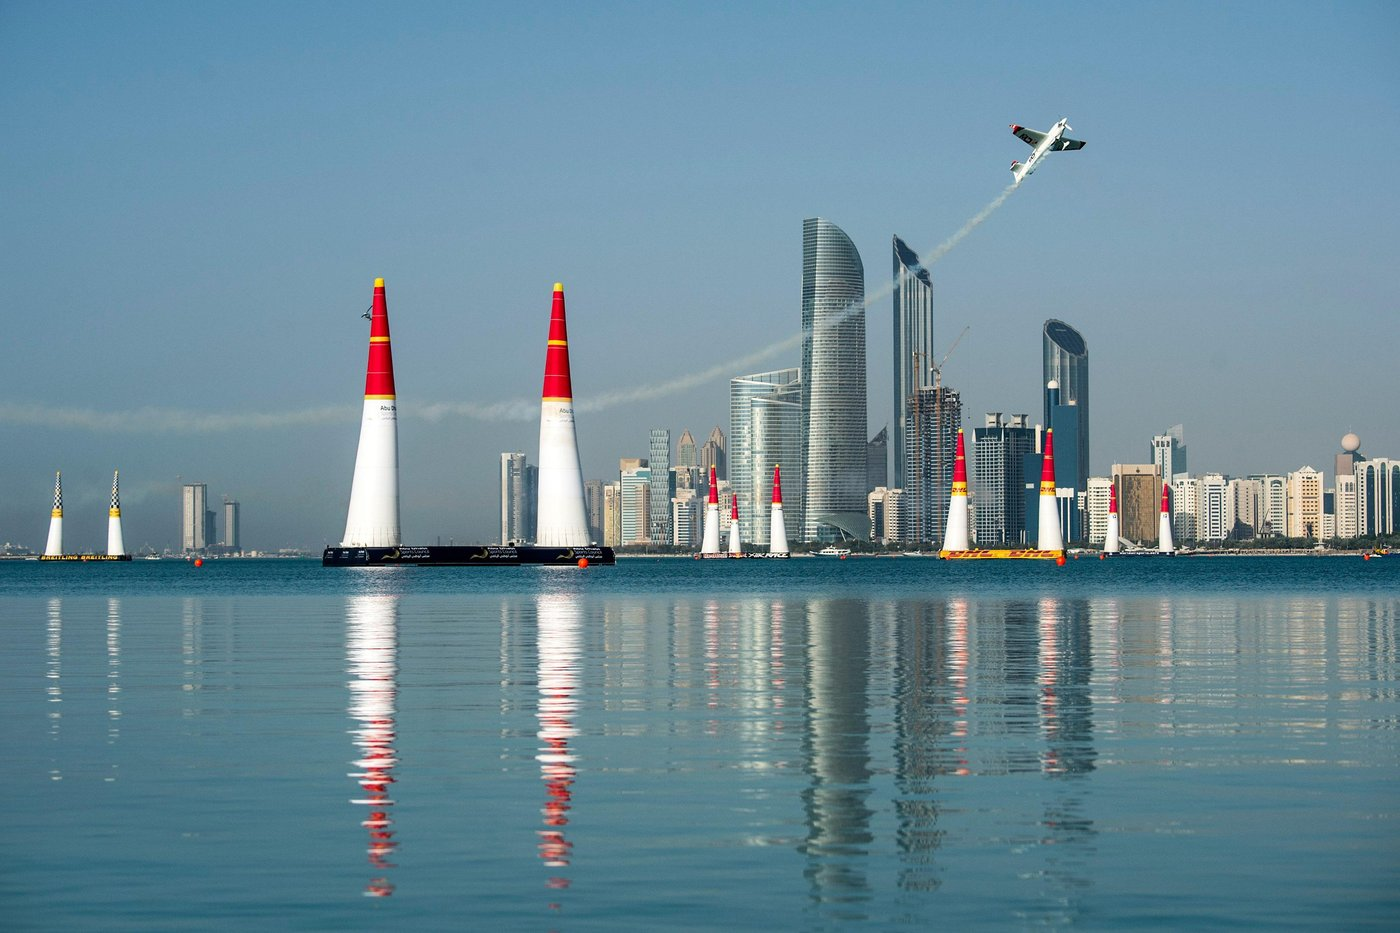 Cita en Abu Dhabi Red Bull Air Race